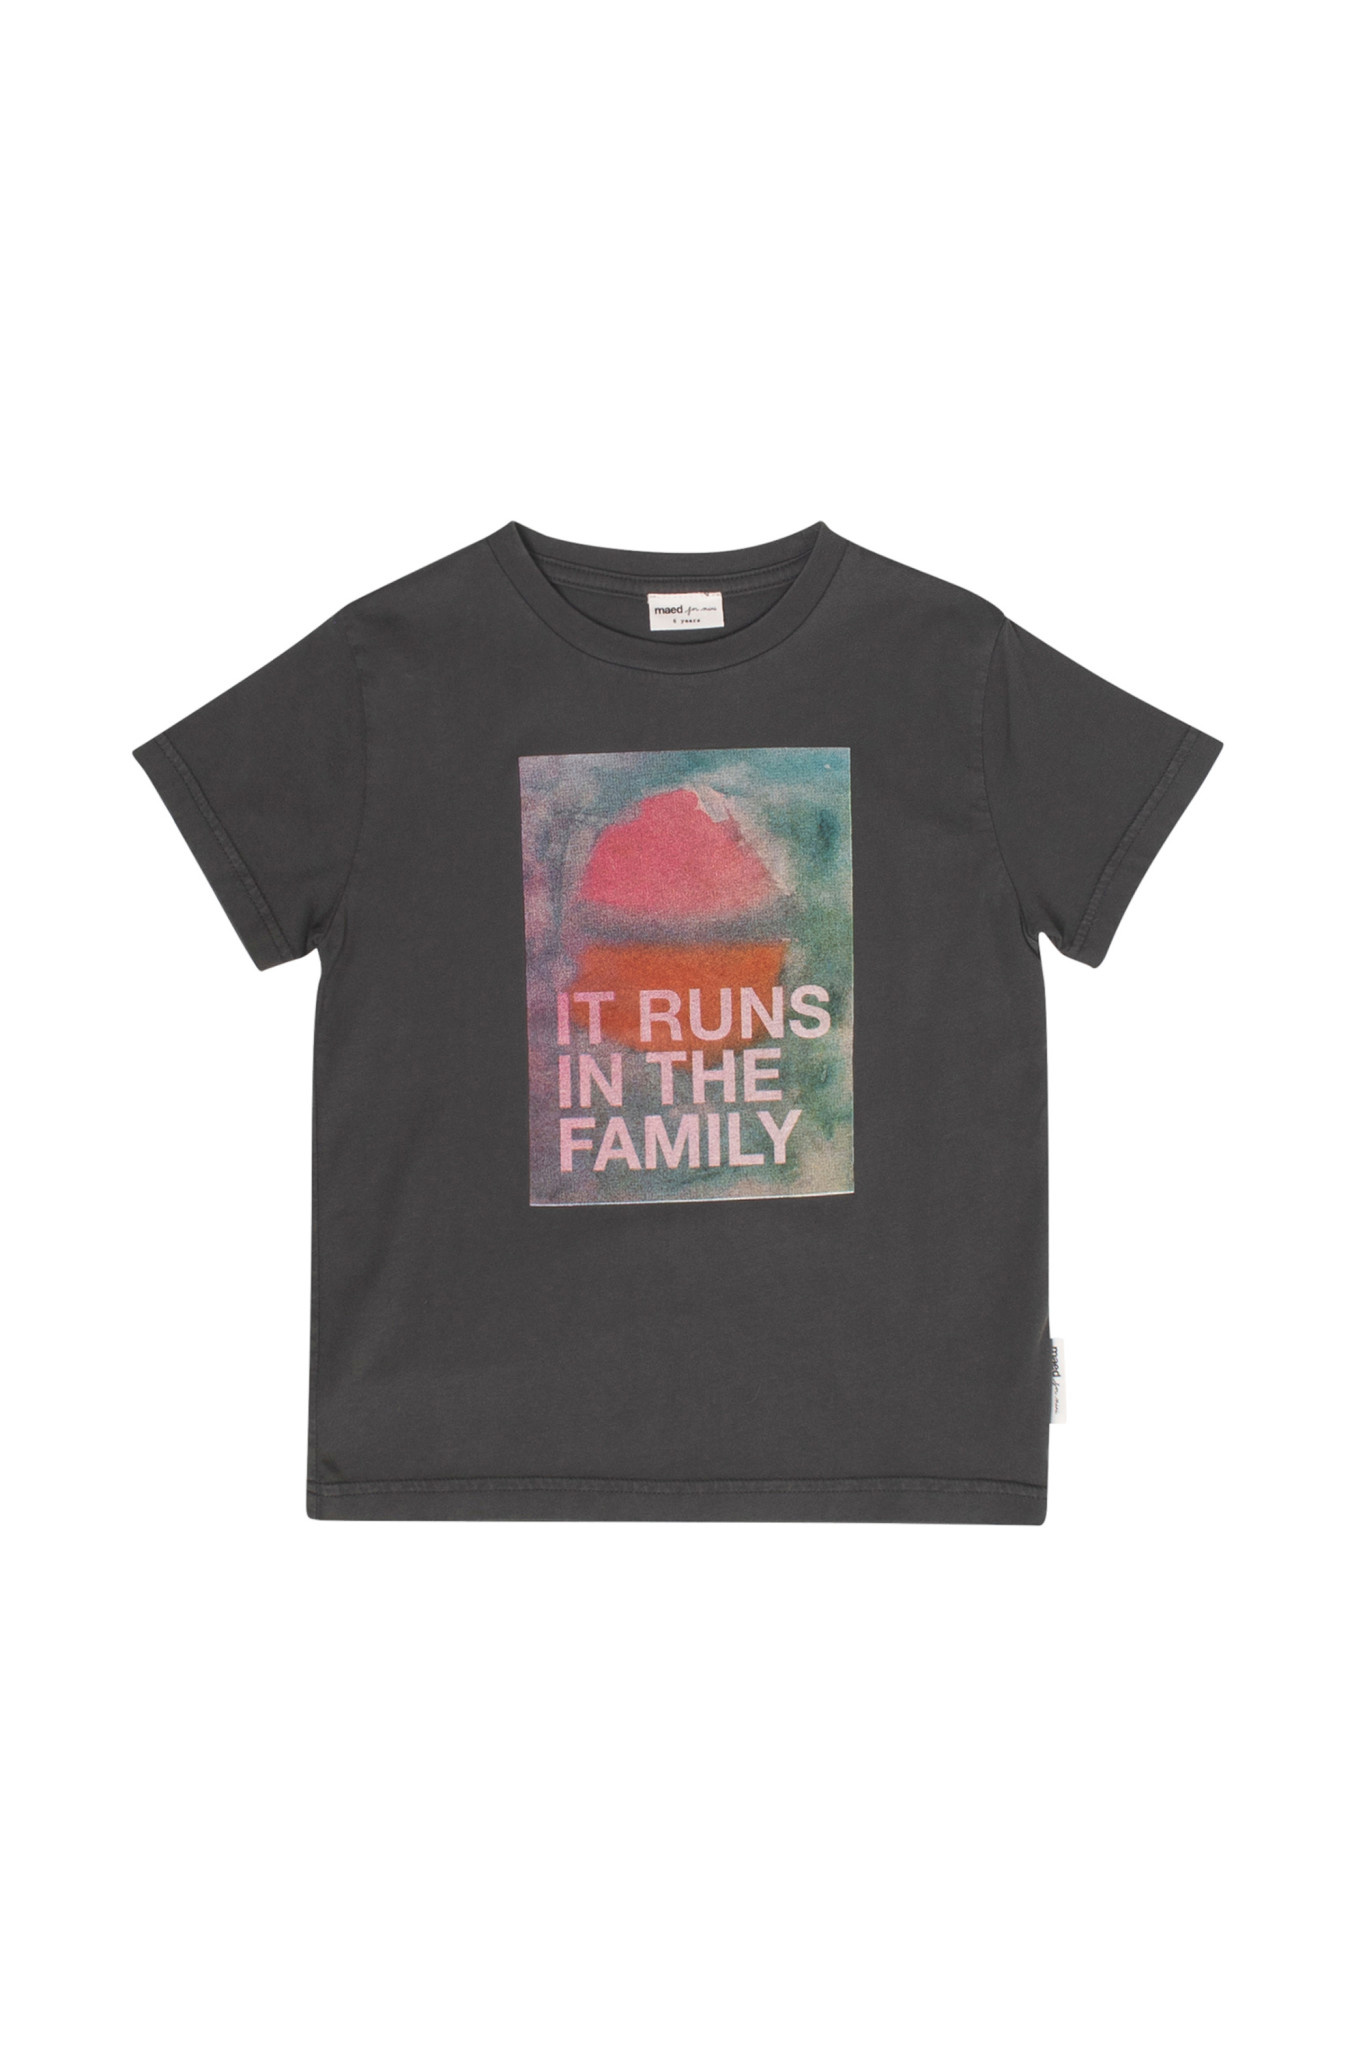 It runs in the family t-shirt baby-1